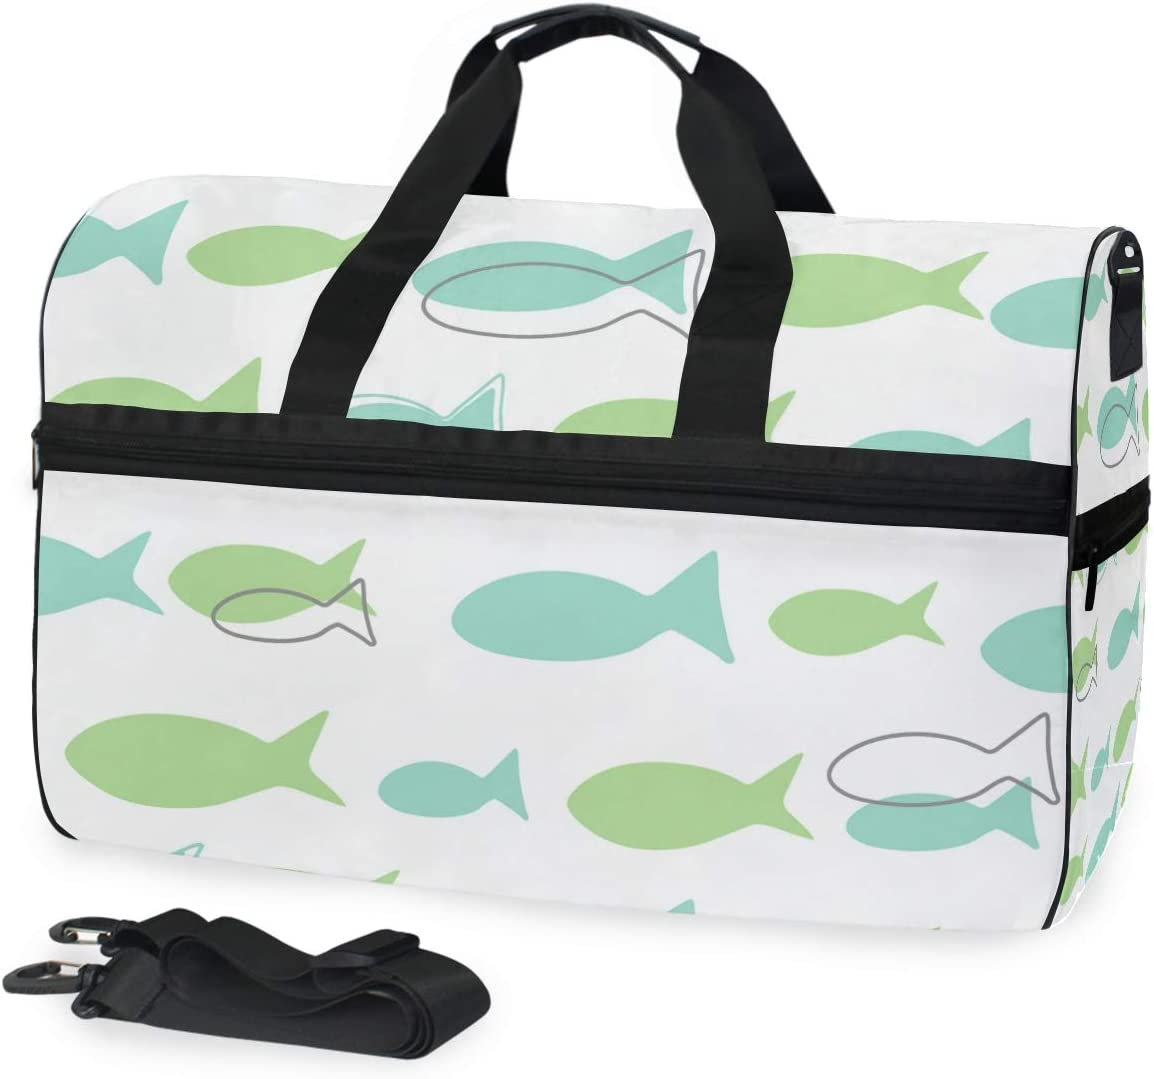 FANTAZIO Cartoon Fishes Sports Bag Packable Travel Duffle Bag Lightweight Water Resistant Tear Resistant